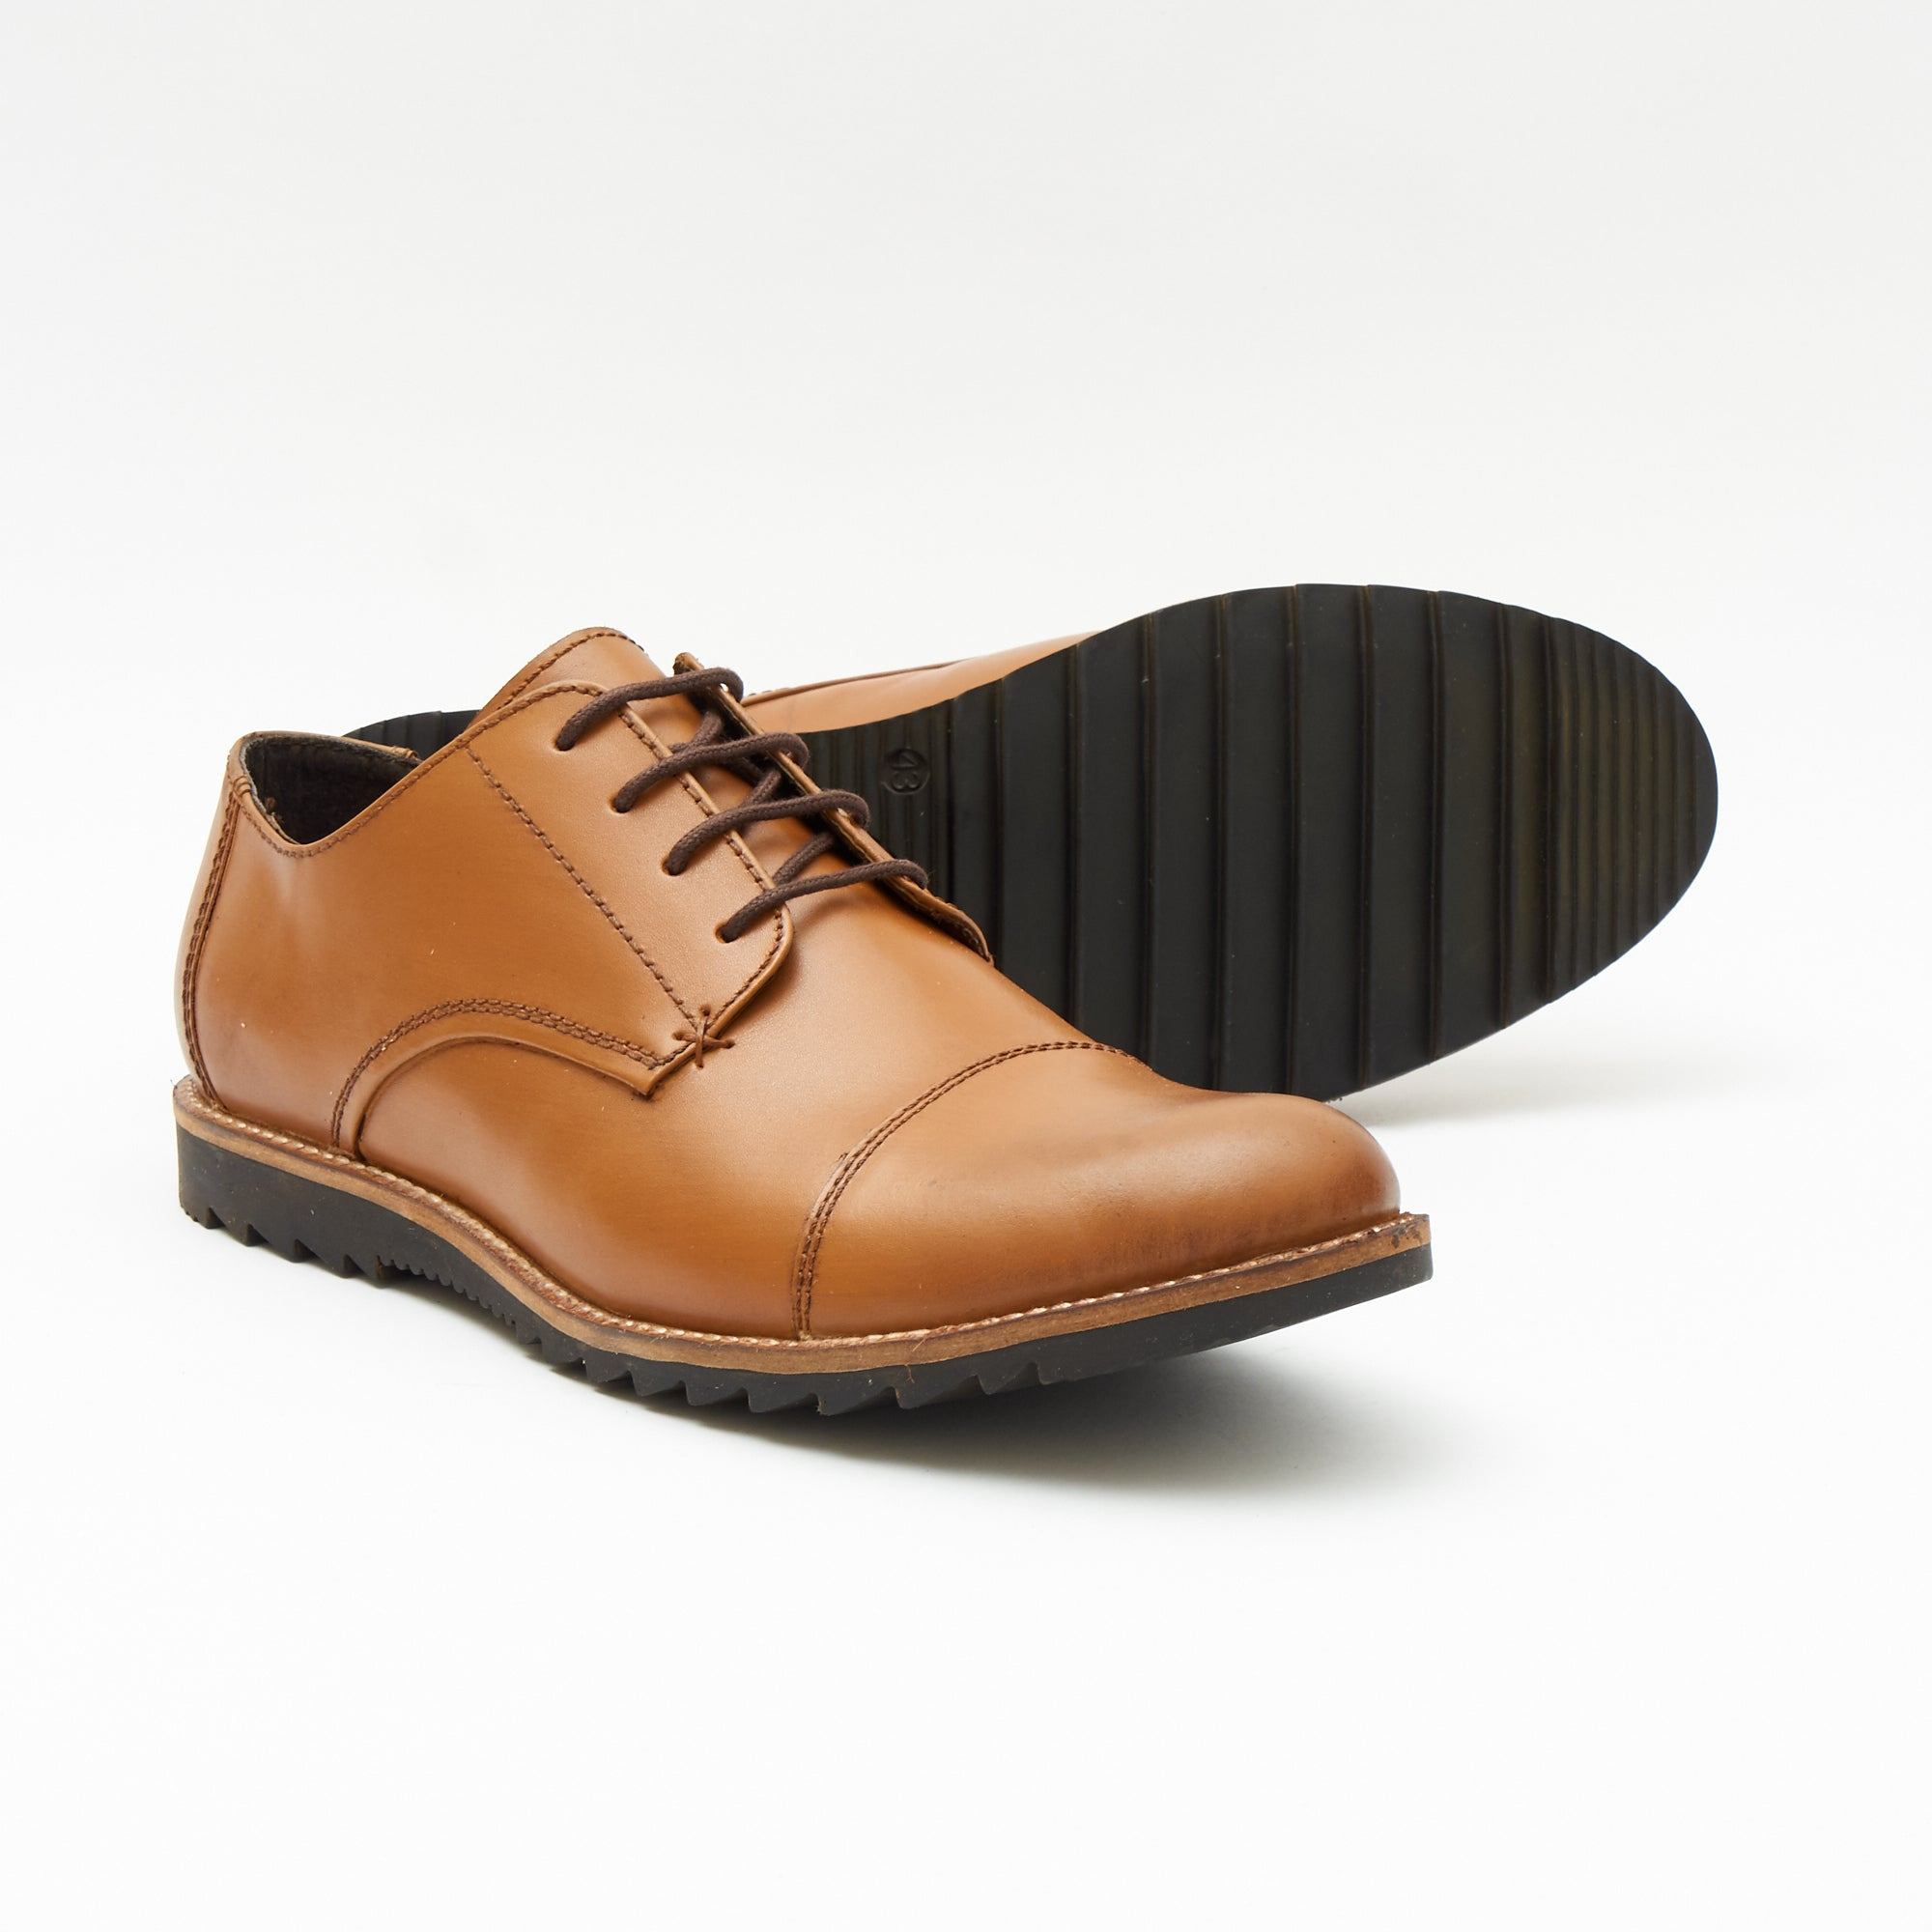 Mens Leather Formal Oxford Shoes- 50631_Tan